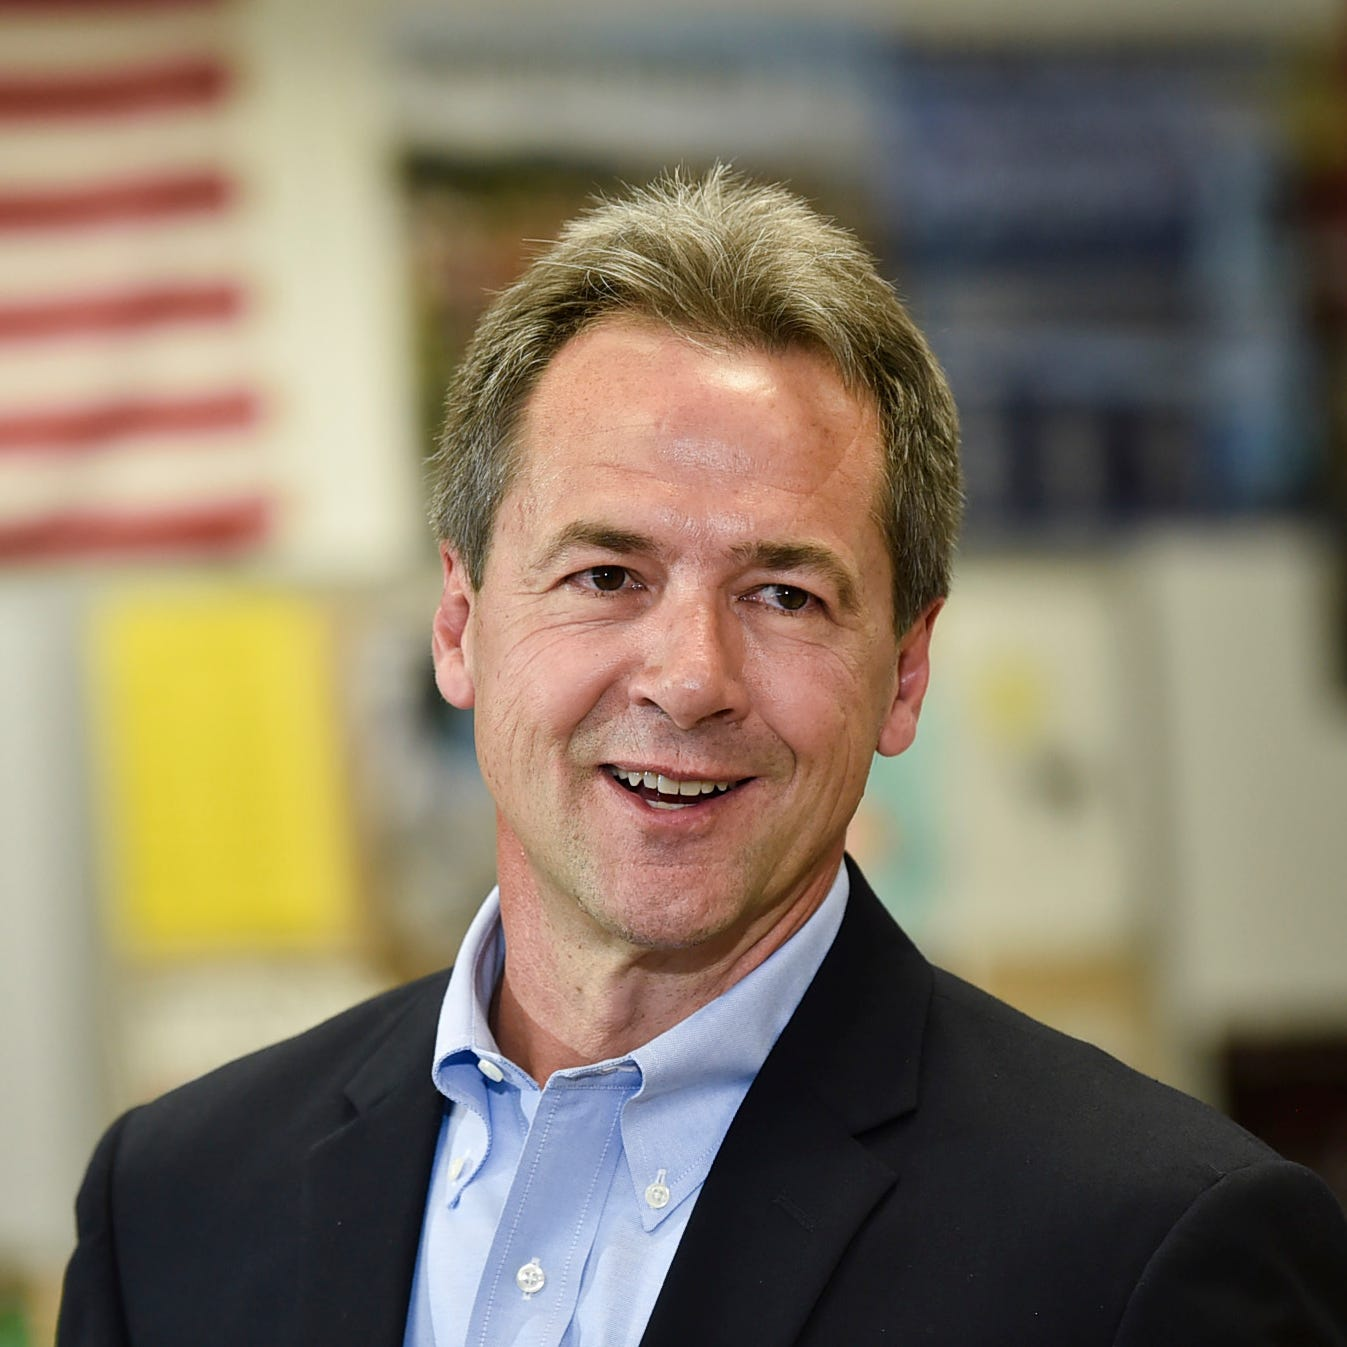 Steve Bullock, in his first Iowa visit as a presidential candidate, will have the support of AG Tom Miller